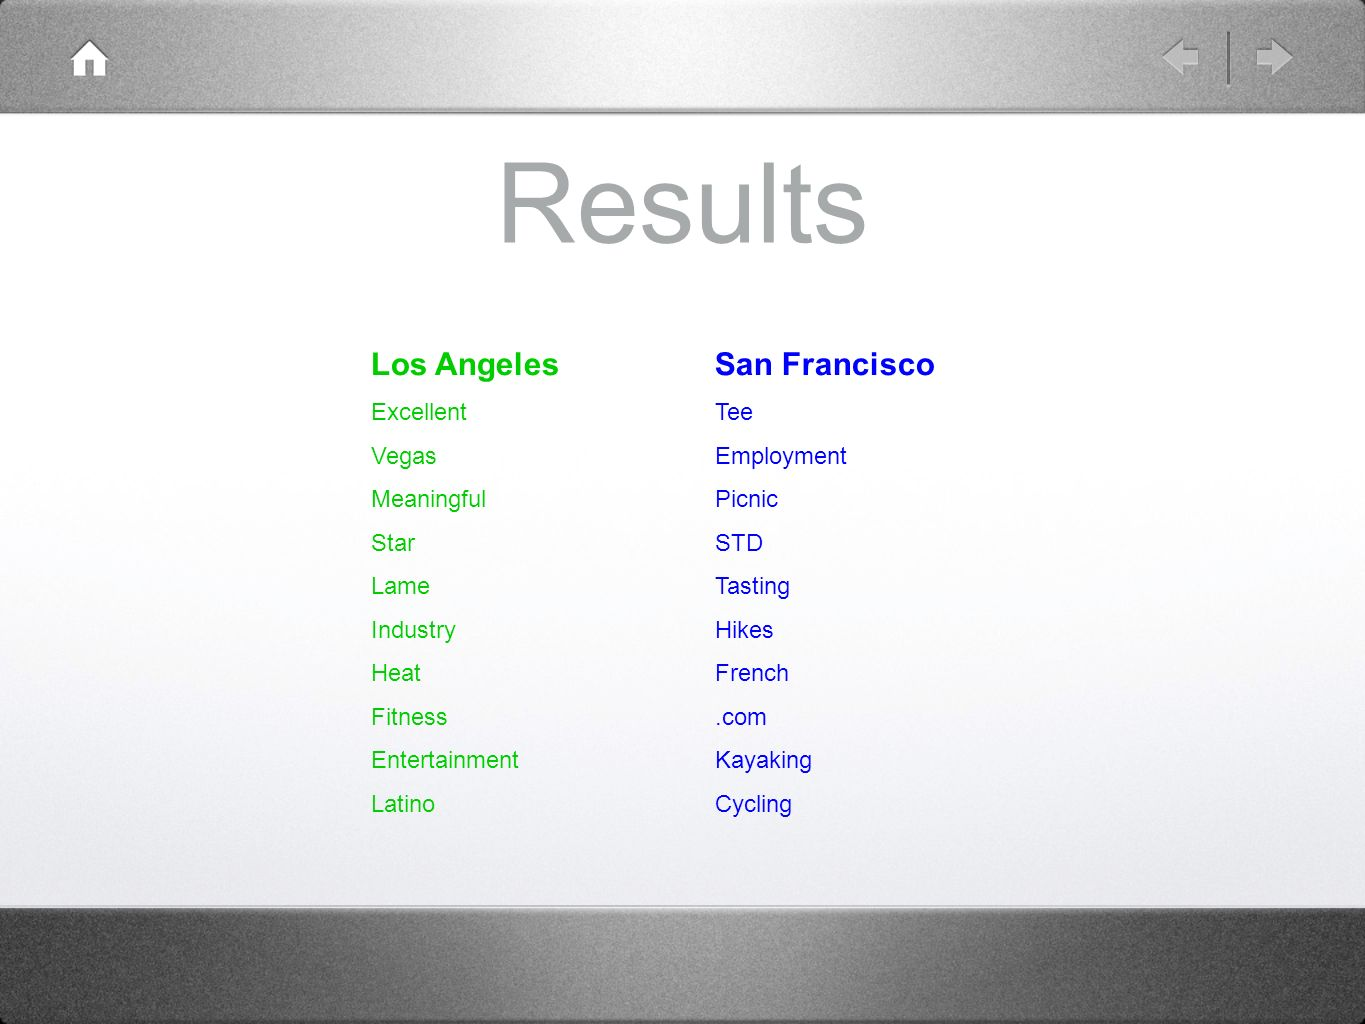 Results Los Angeles Excellent Vegas Meaningful Star Lame Industry Heat Fitness Entertainment Latino San Francisco Tee Employment Picnic STD Tasting Hikes French.com Kayaking Cycling